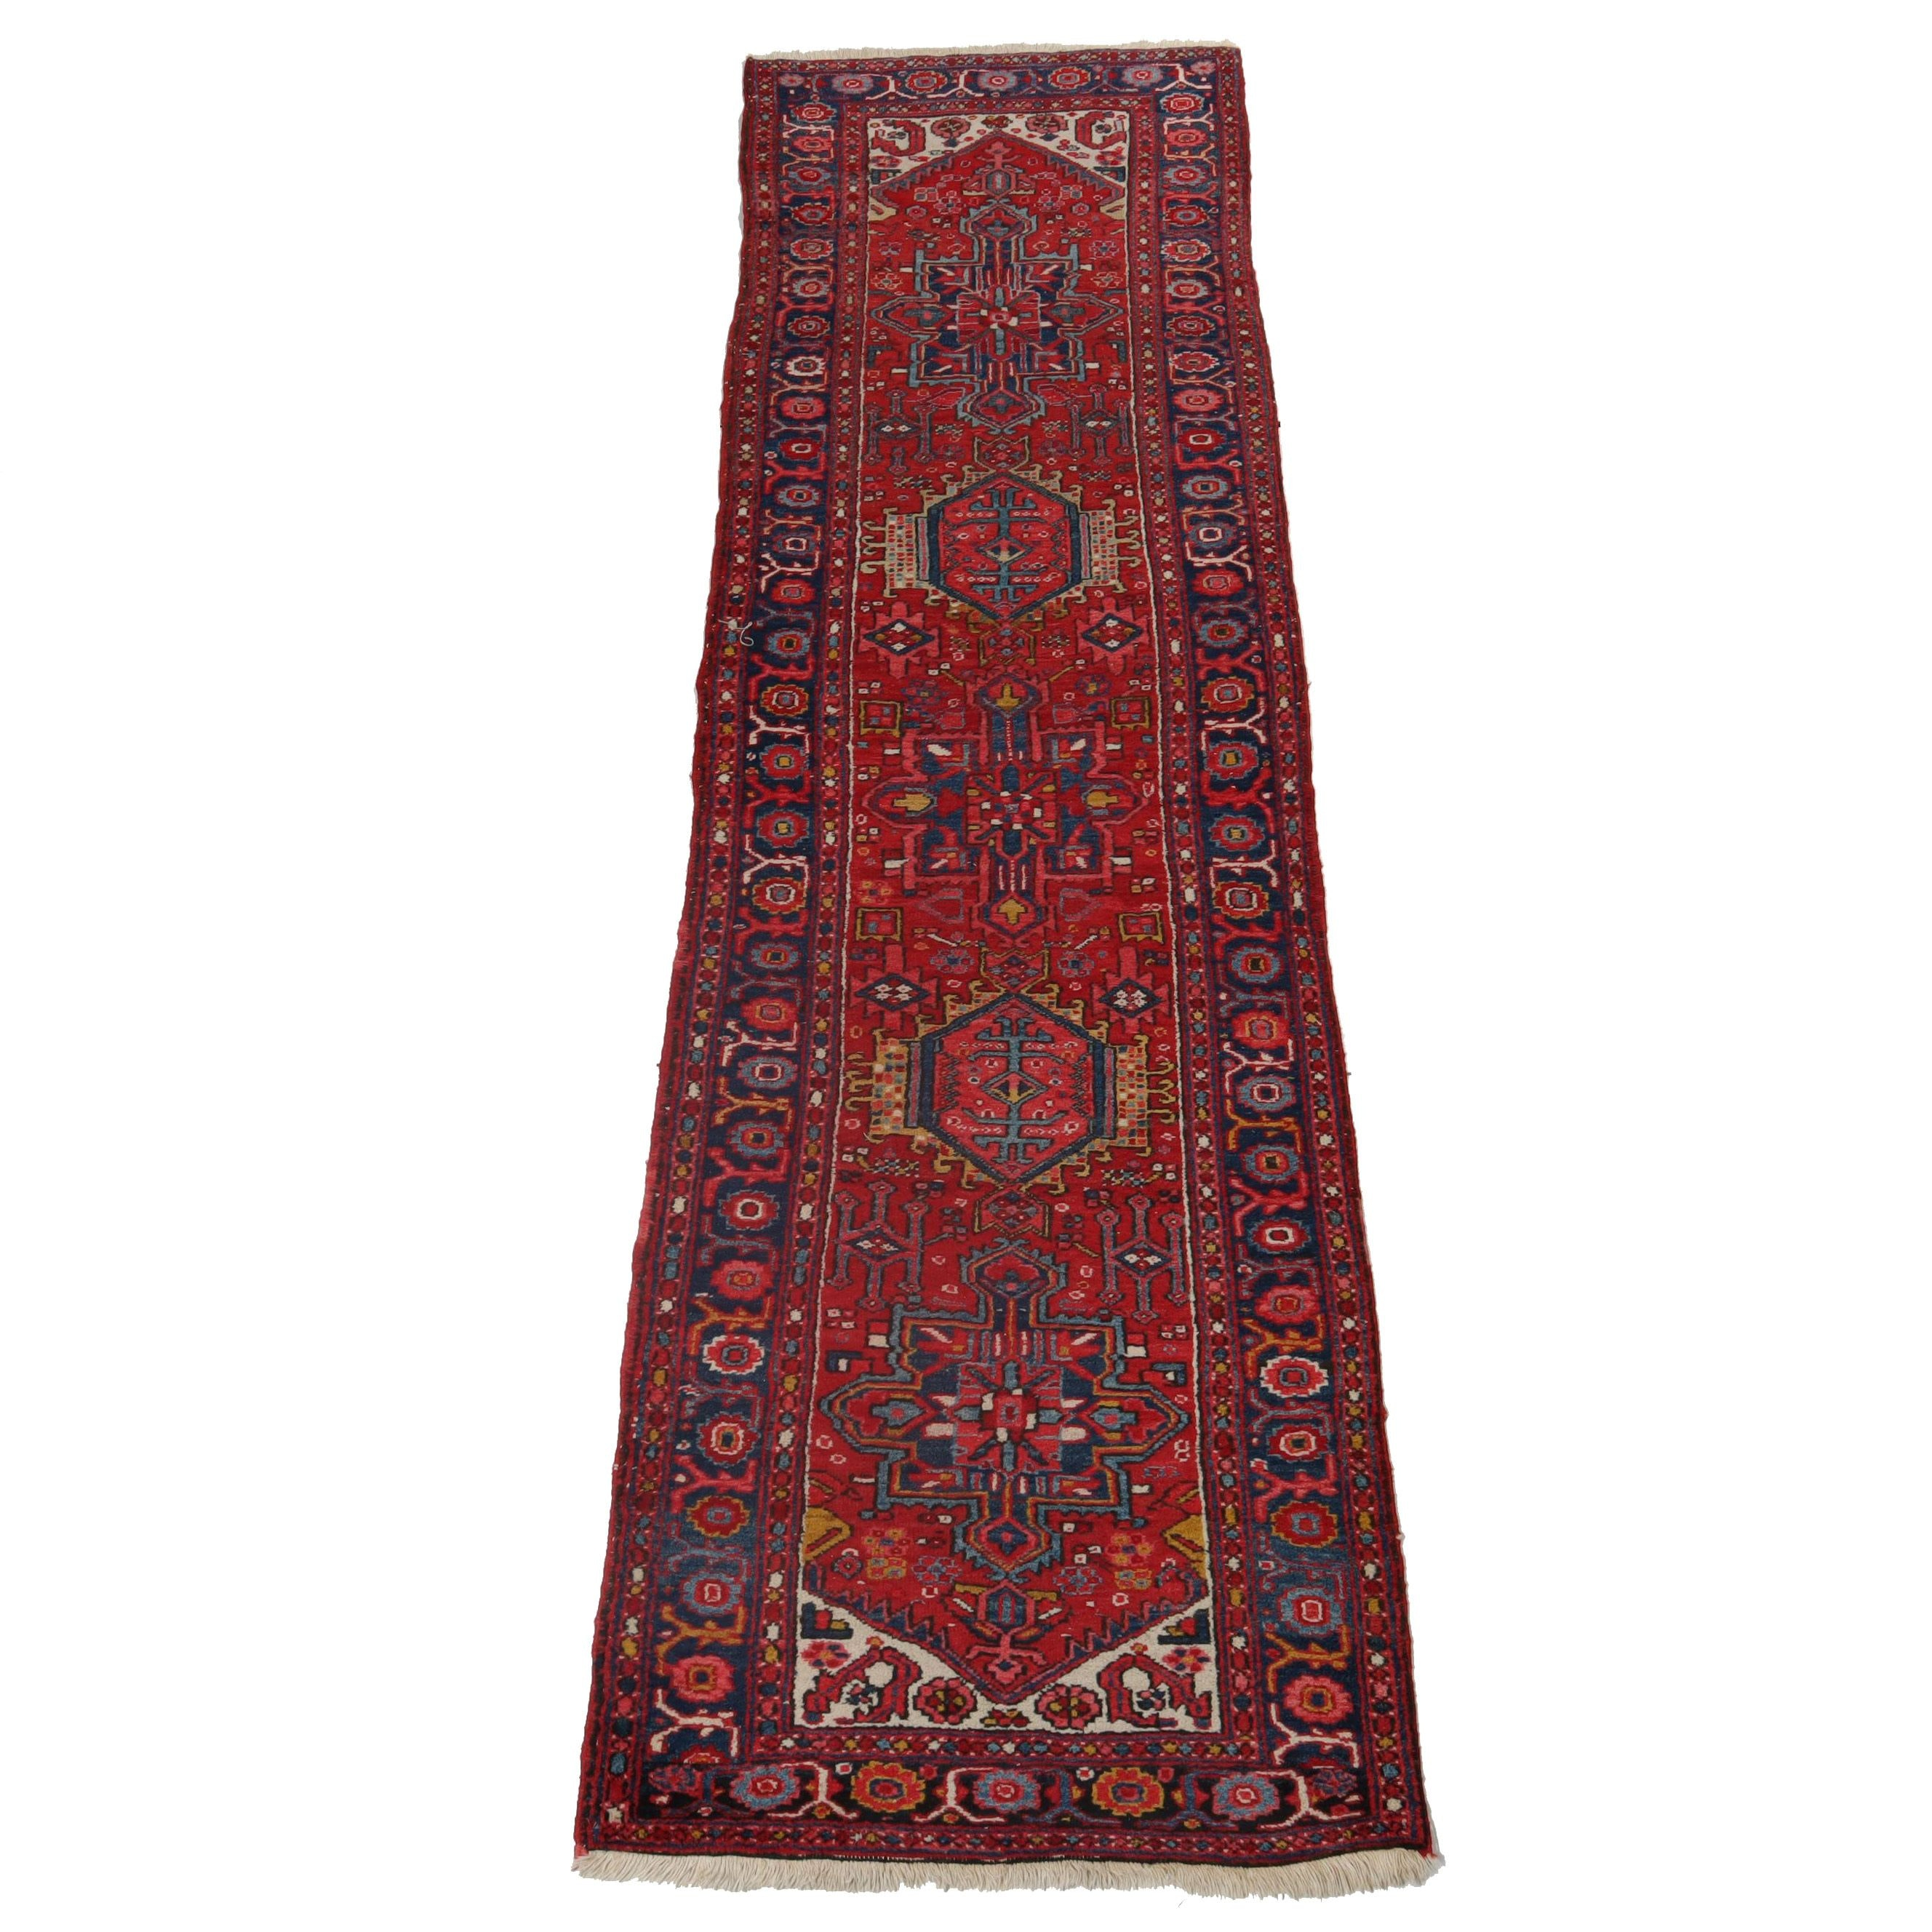 3'1 x 10'8 Hand-Knotted Persian Karaja Heriz Wool Carpet Runner, Circa 1930